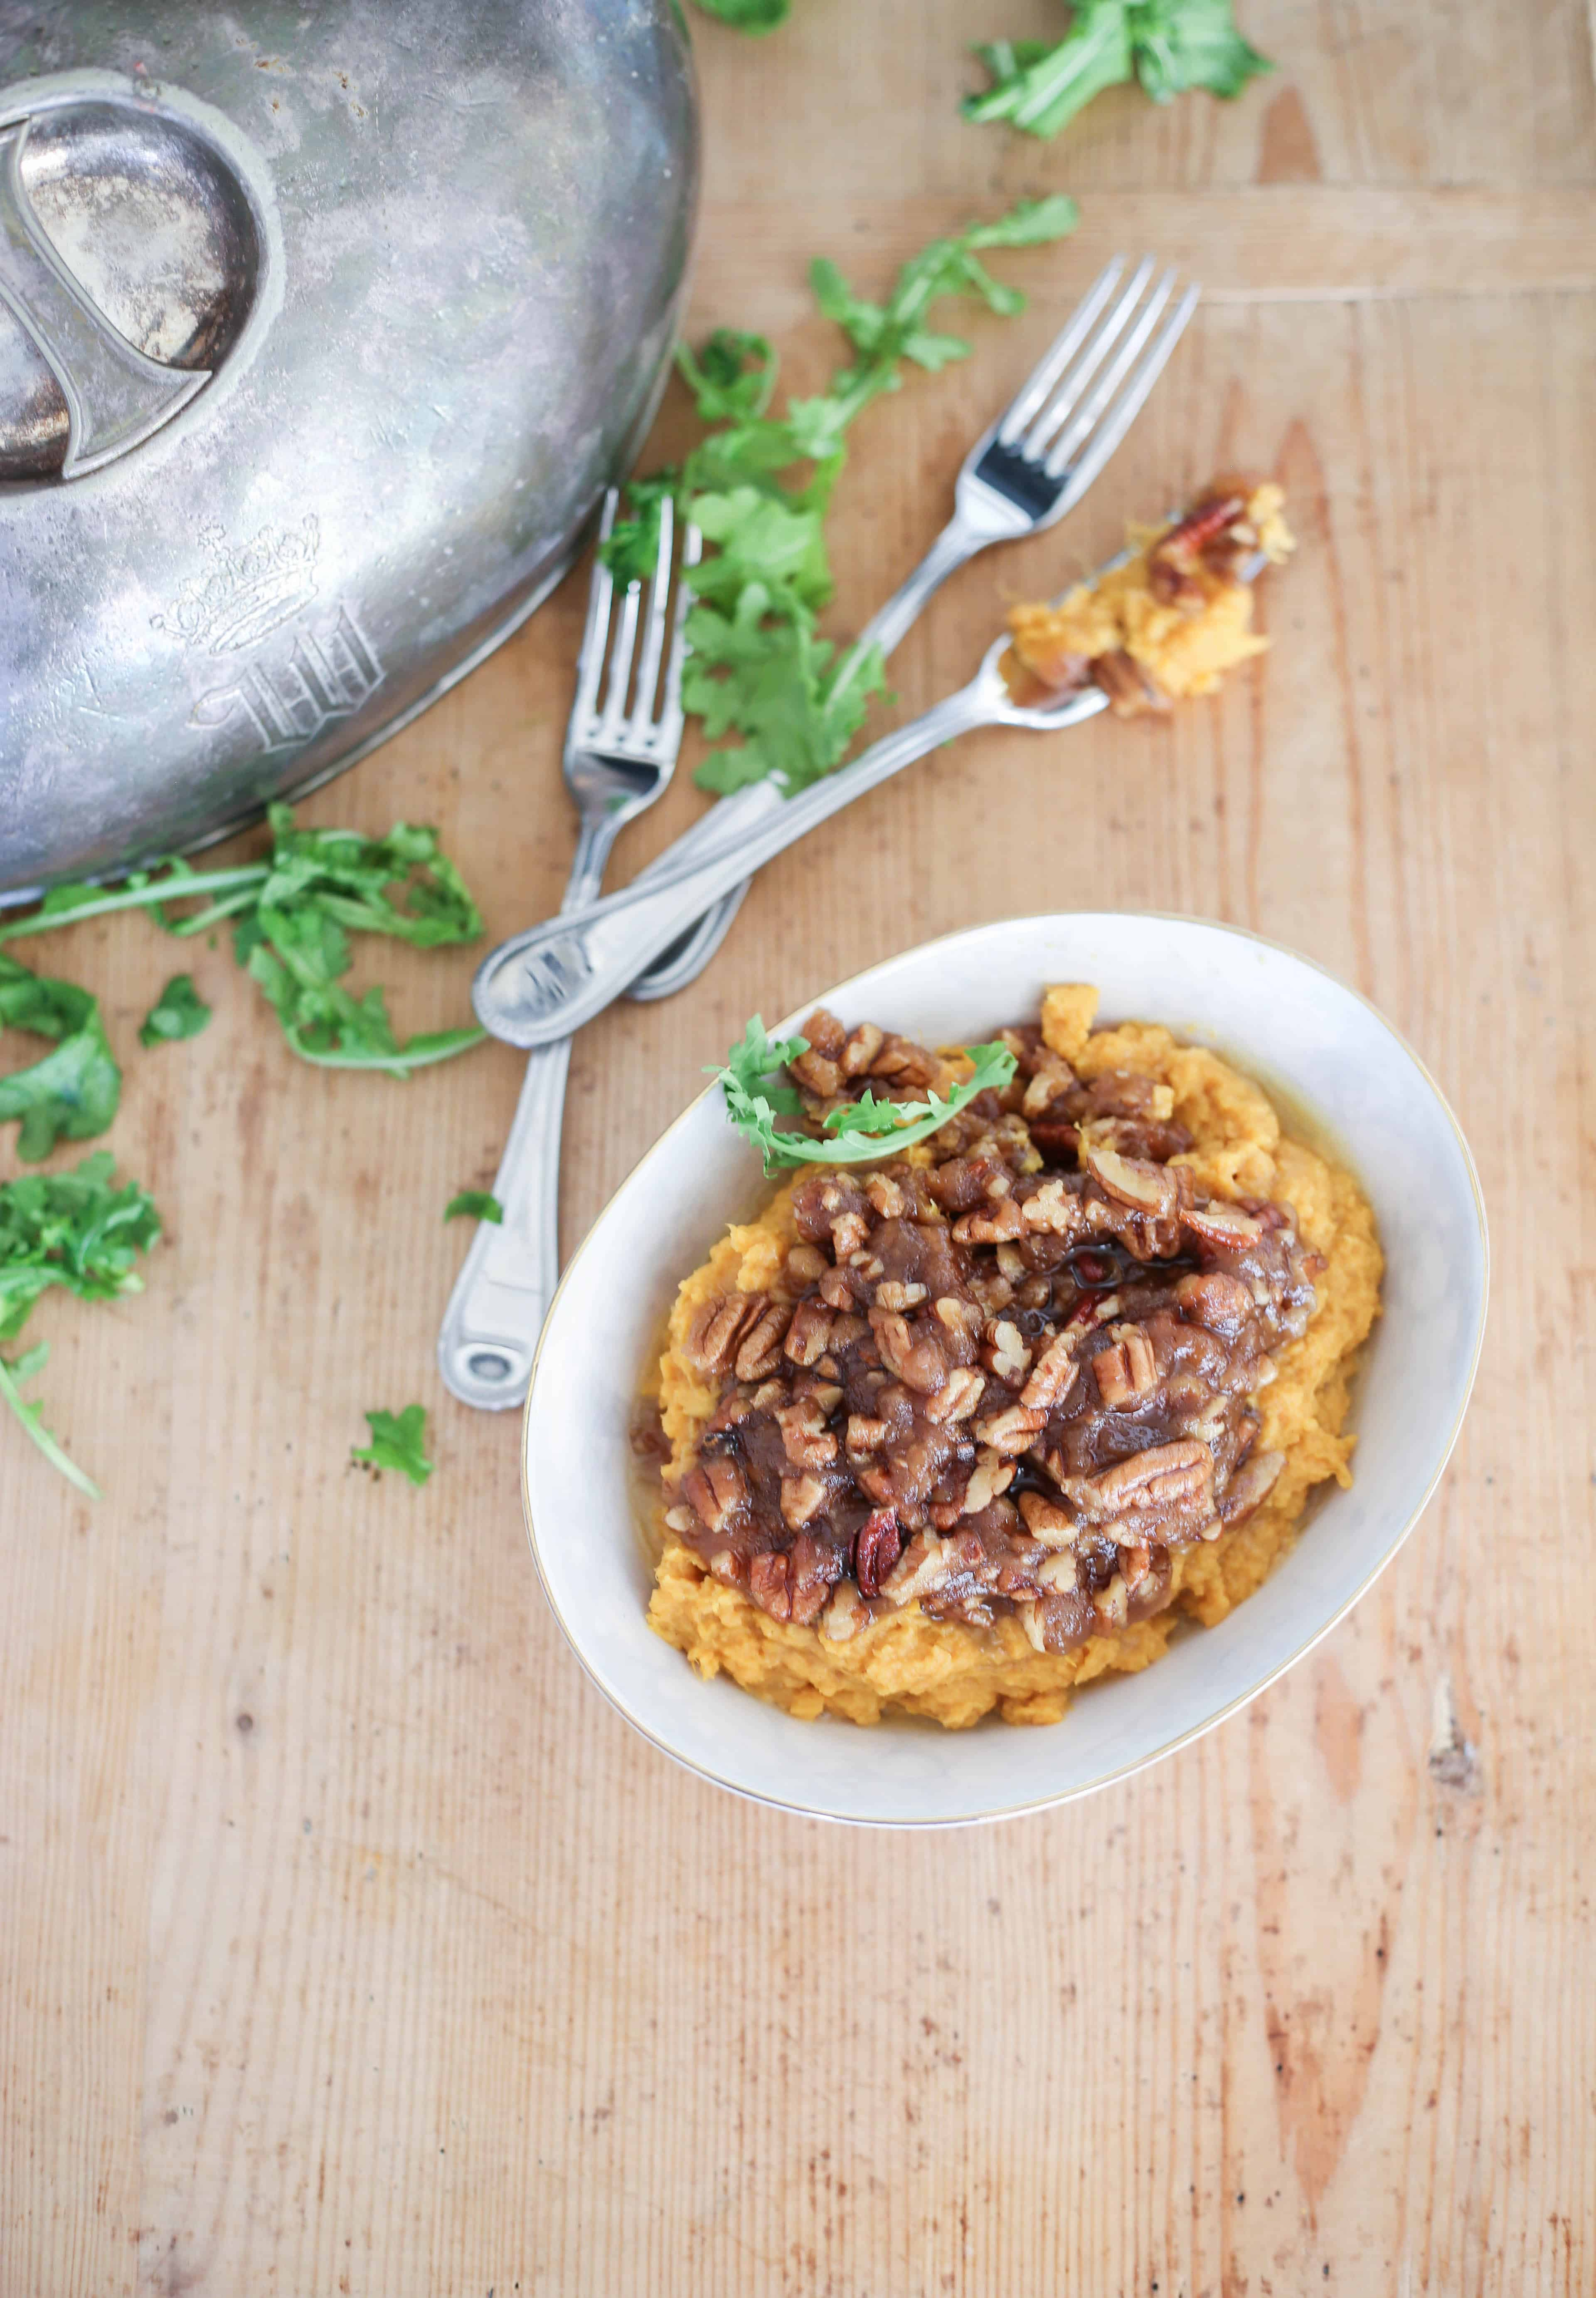 Southern Sweet Potato Casserole with Praline Topping #forthefeast #holiday